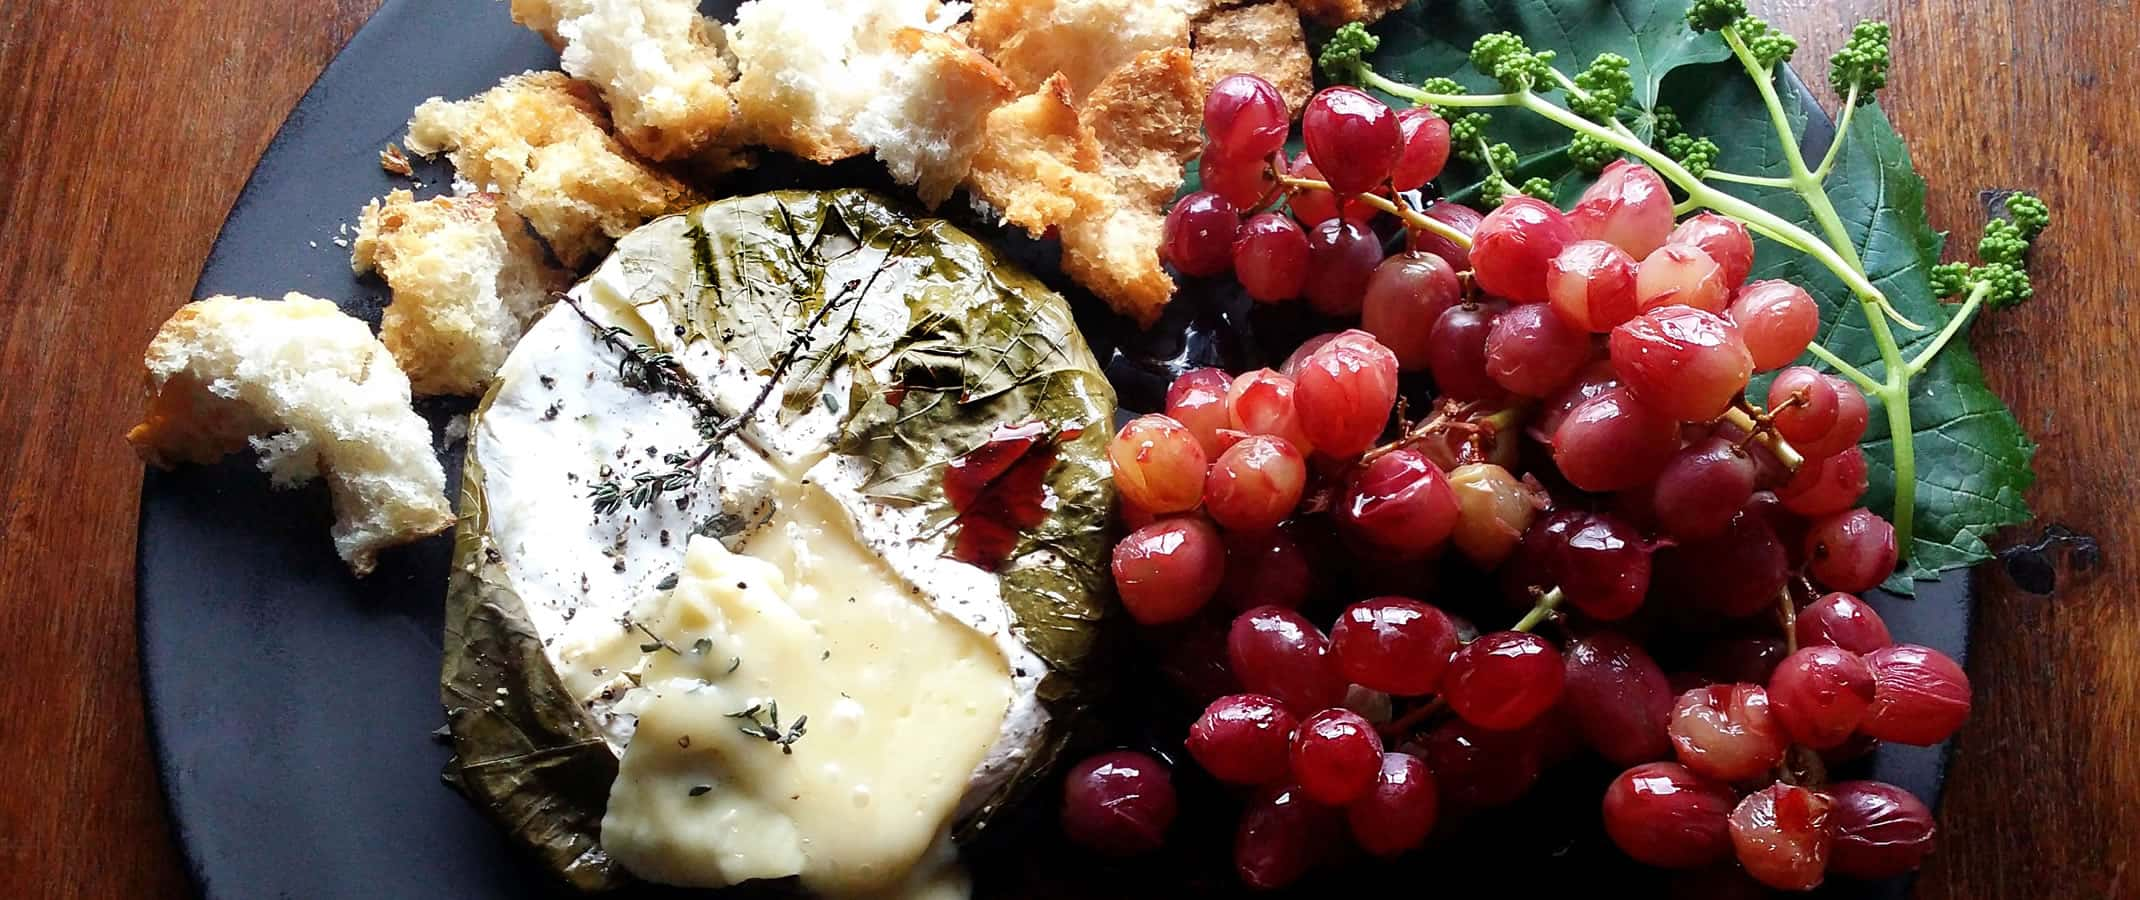 Camembert Roasted in Vine Leaves with Verjuice-Poached Grapes